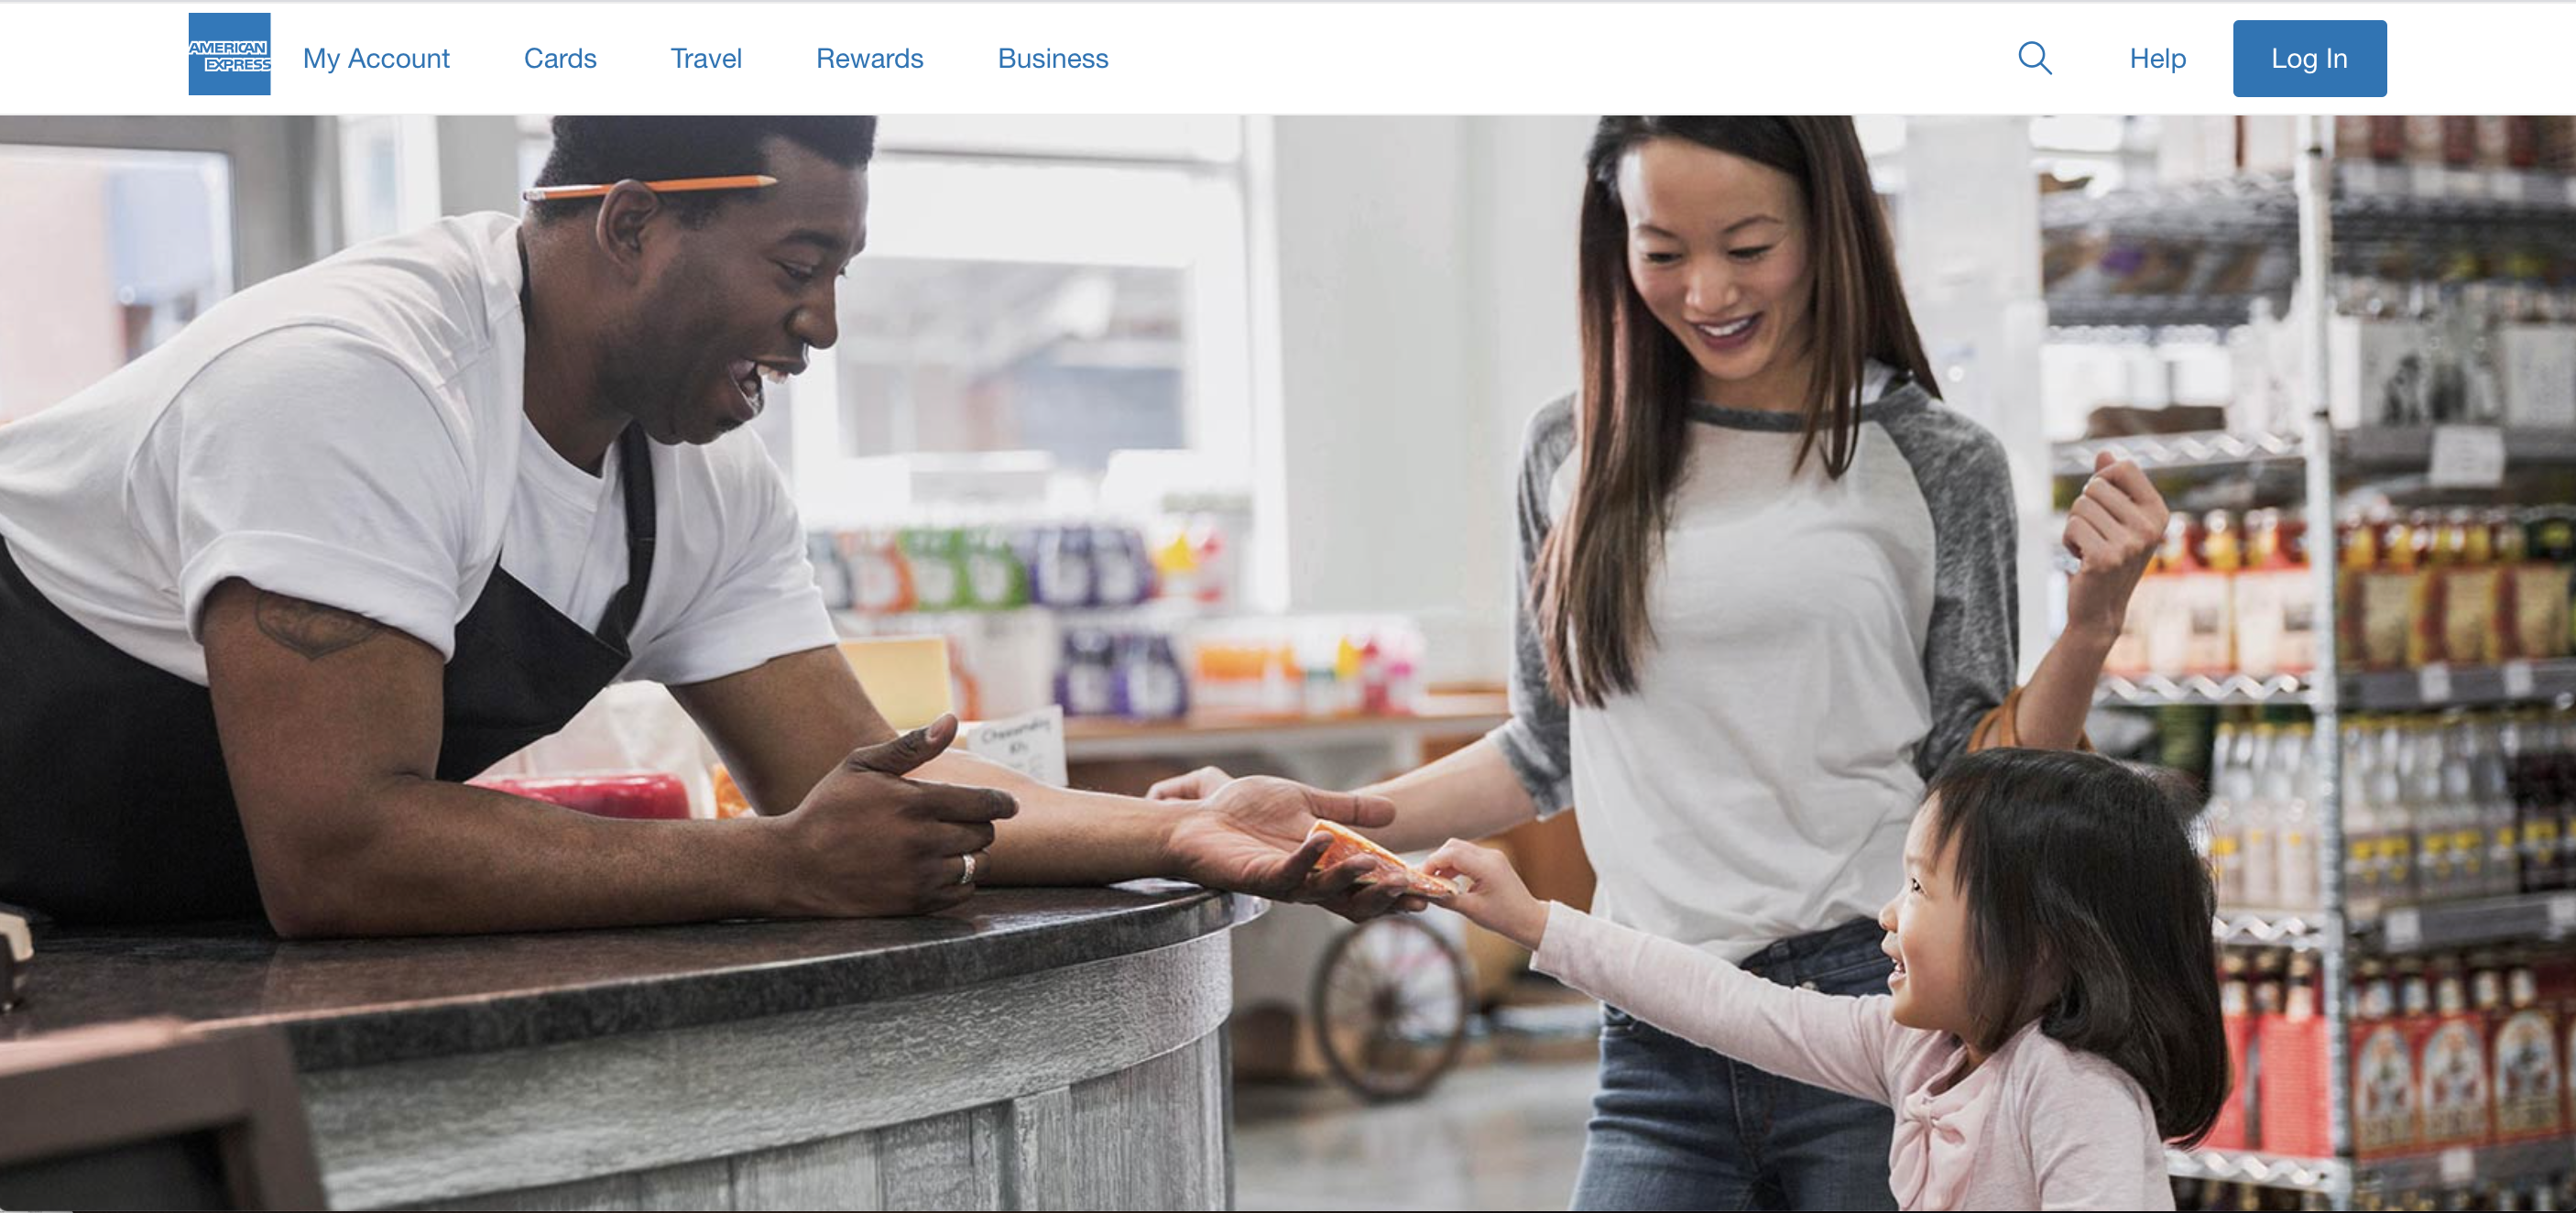 American Express #WellActually Customer Service Report landing page